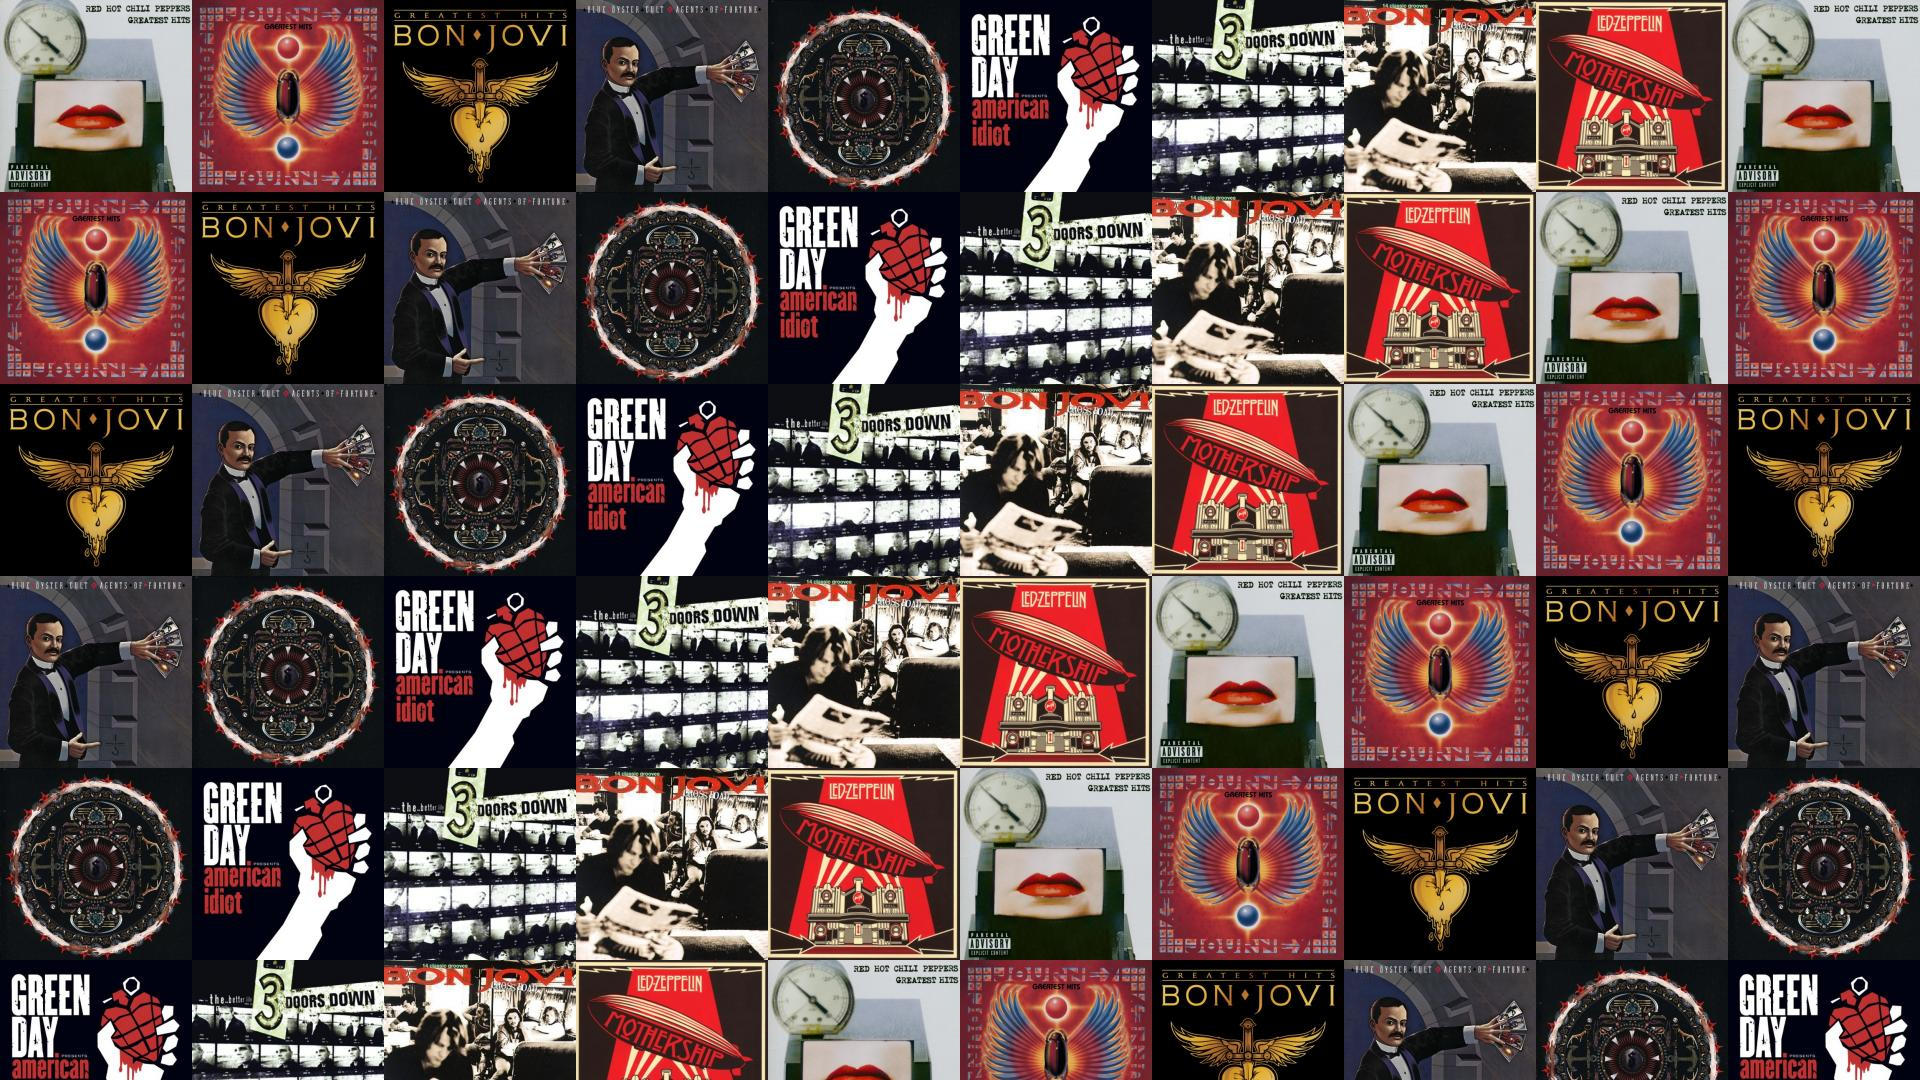 Red hot chili peppers greatest hits download m4a mp3